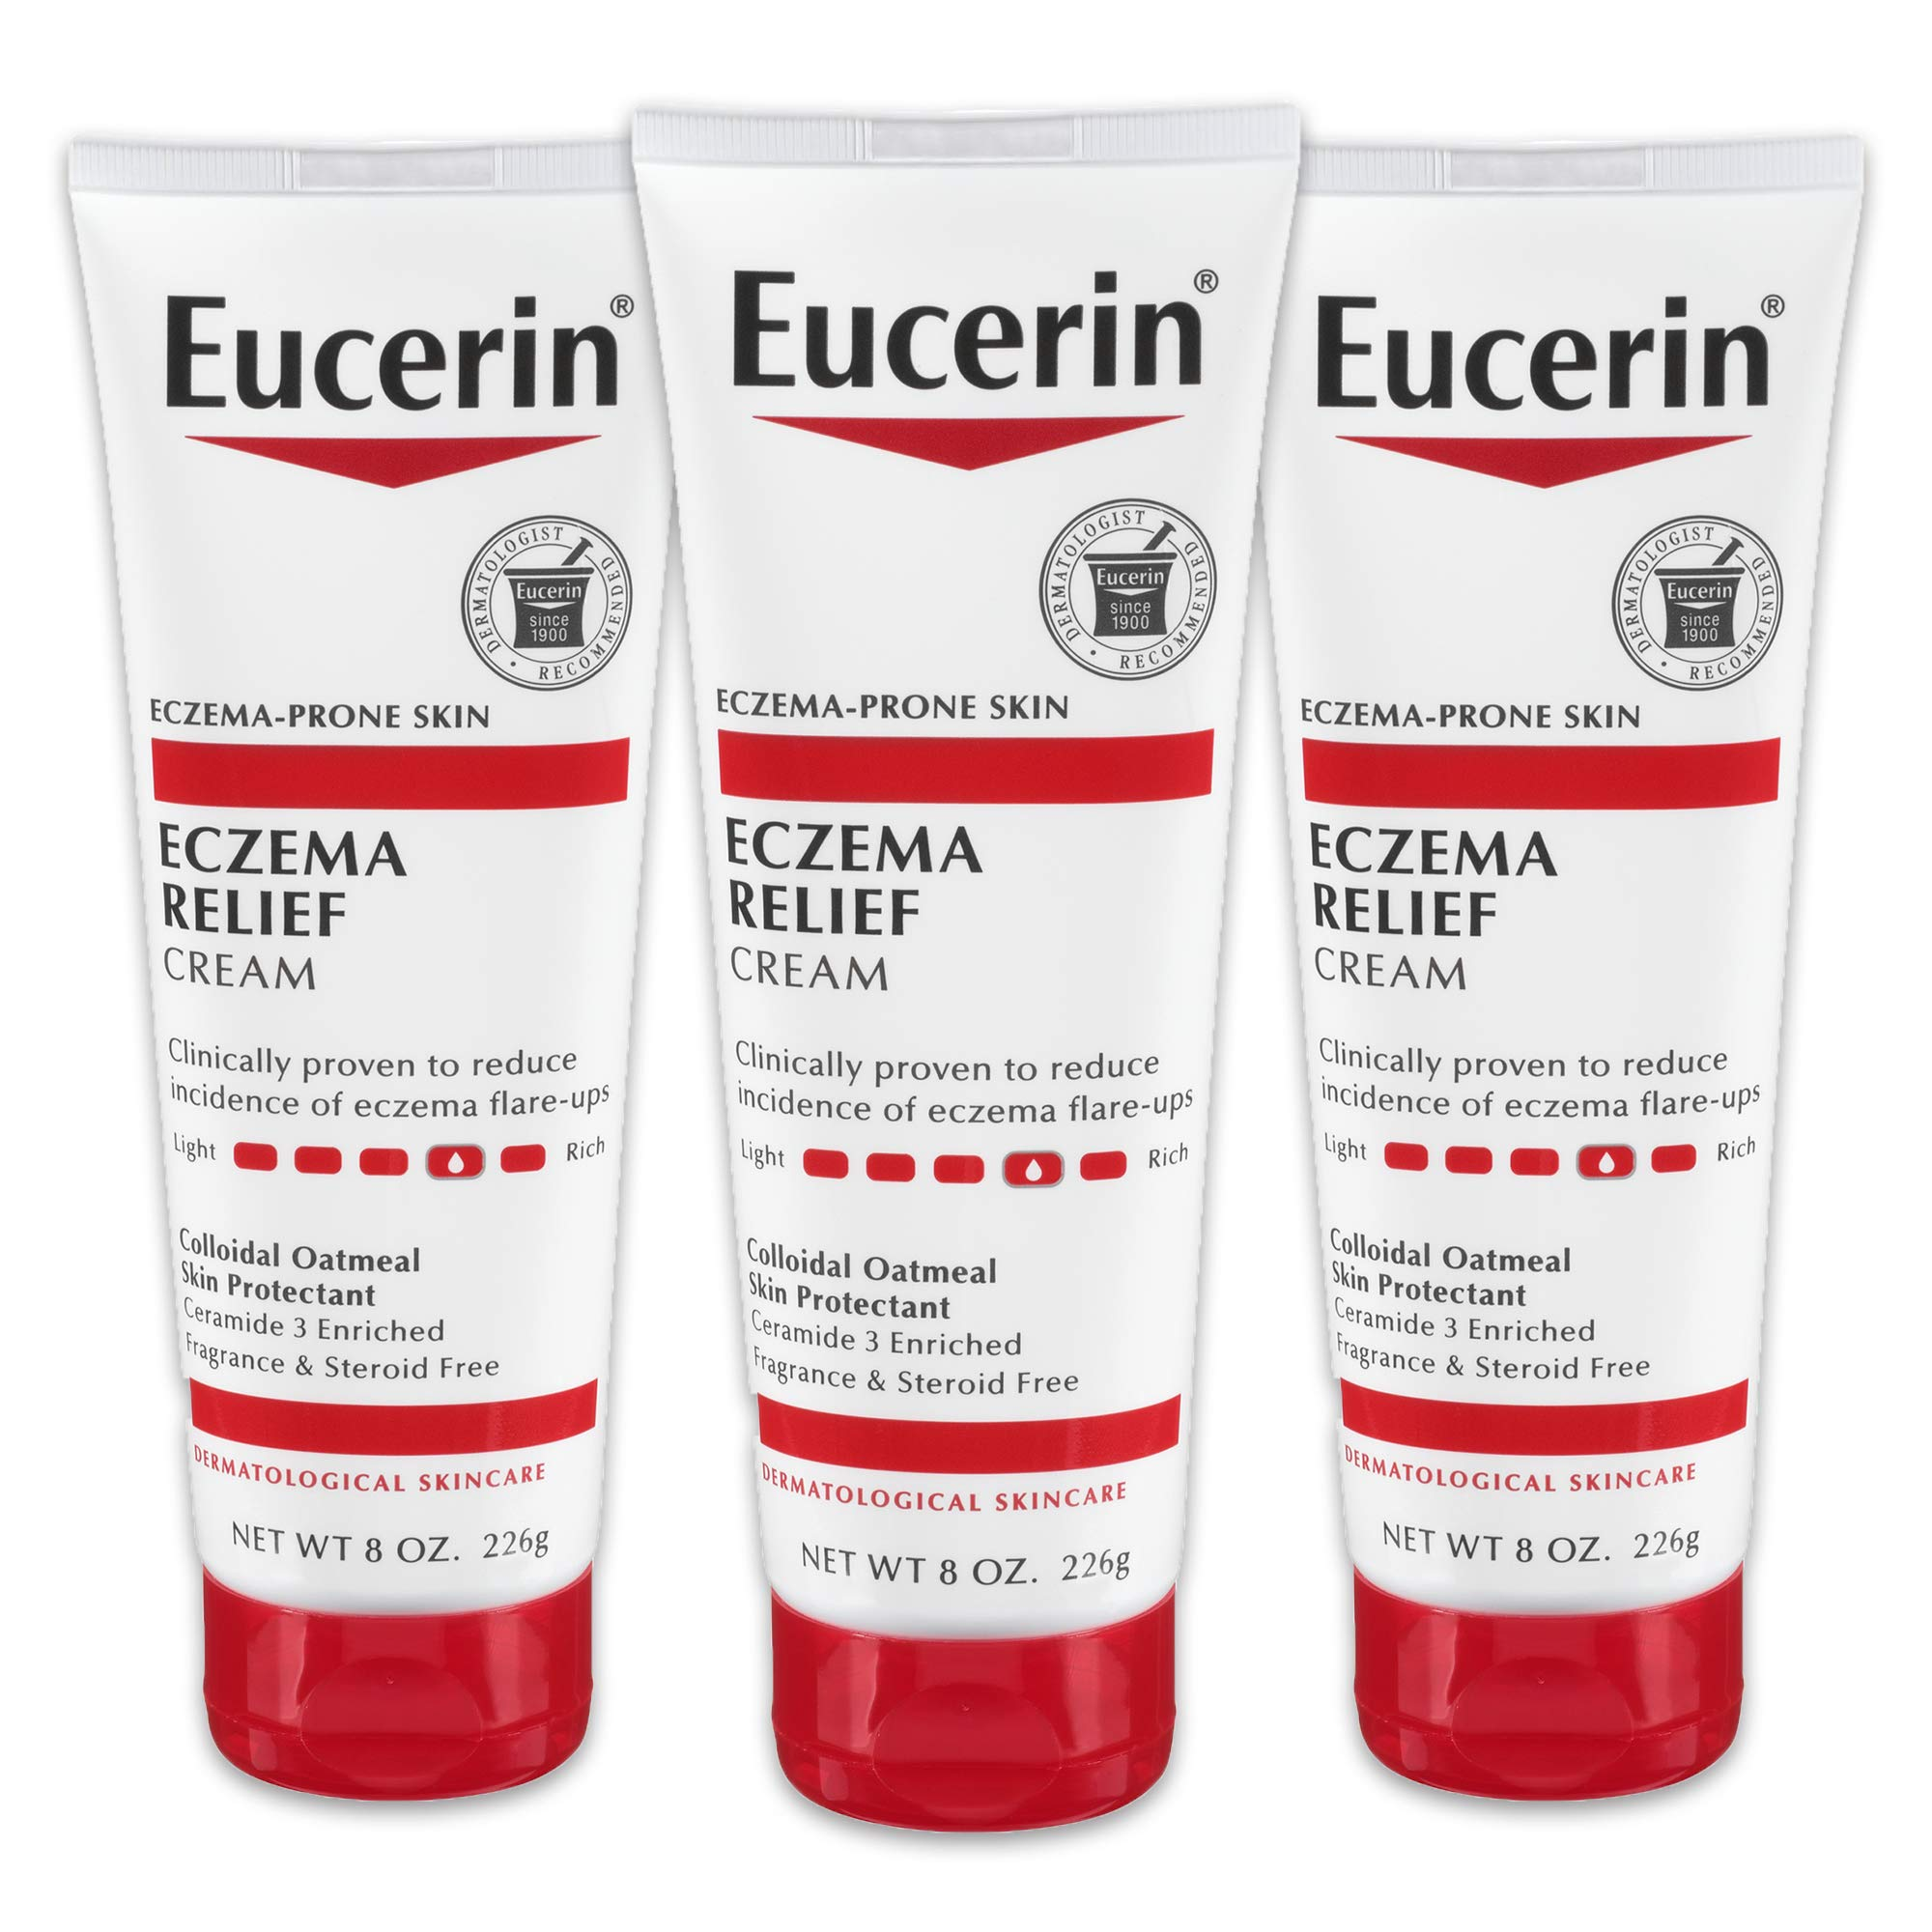 Eucerin Eczema Relief Cream - Full Body Lotion for Eczema-Prone Skin - 8 oz. Tube (Pack of 3)